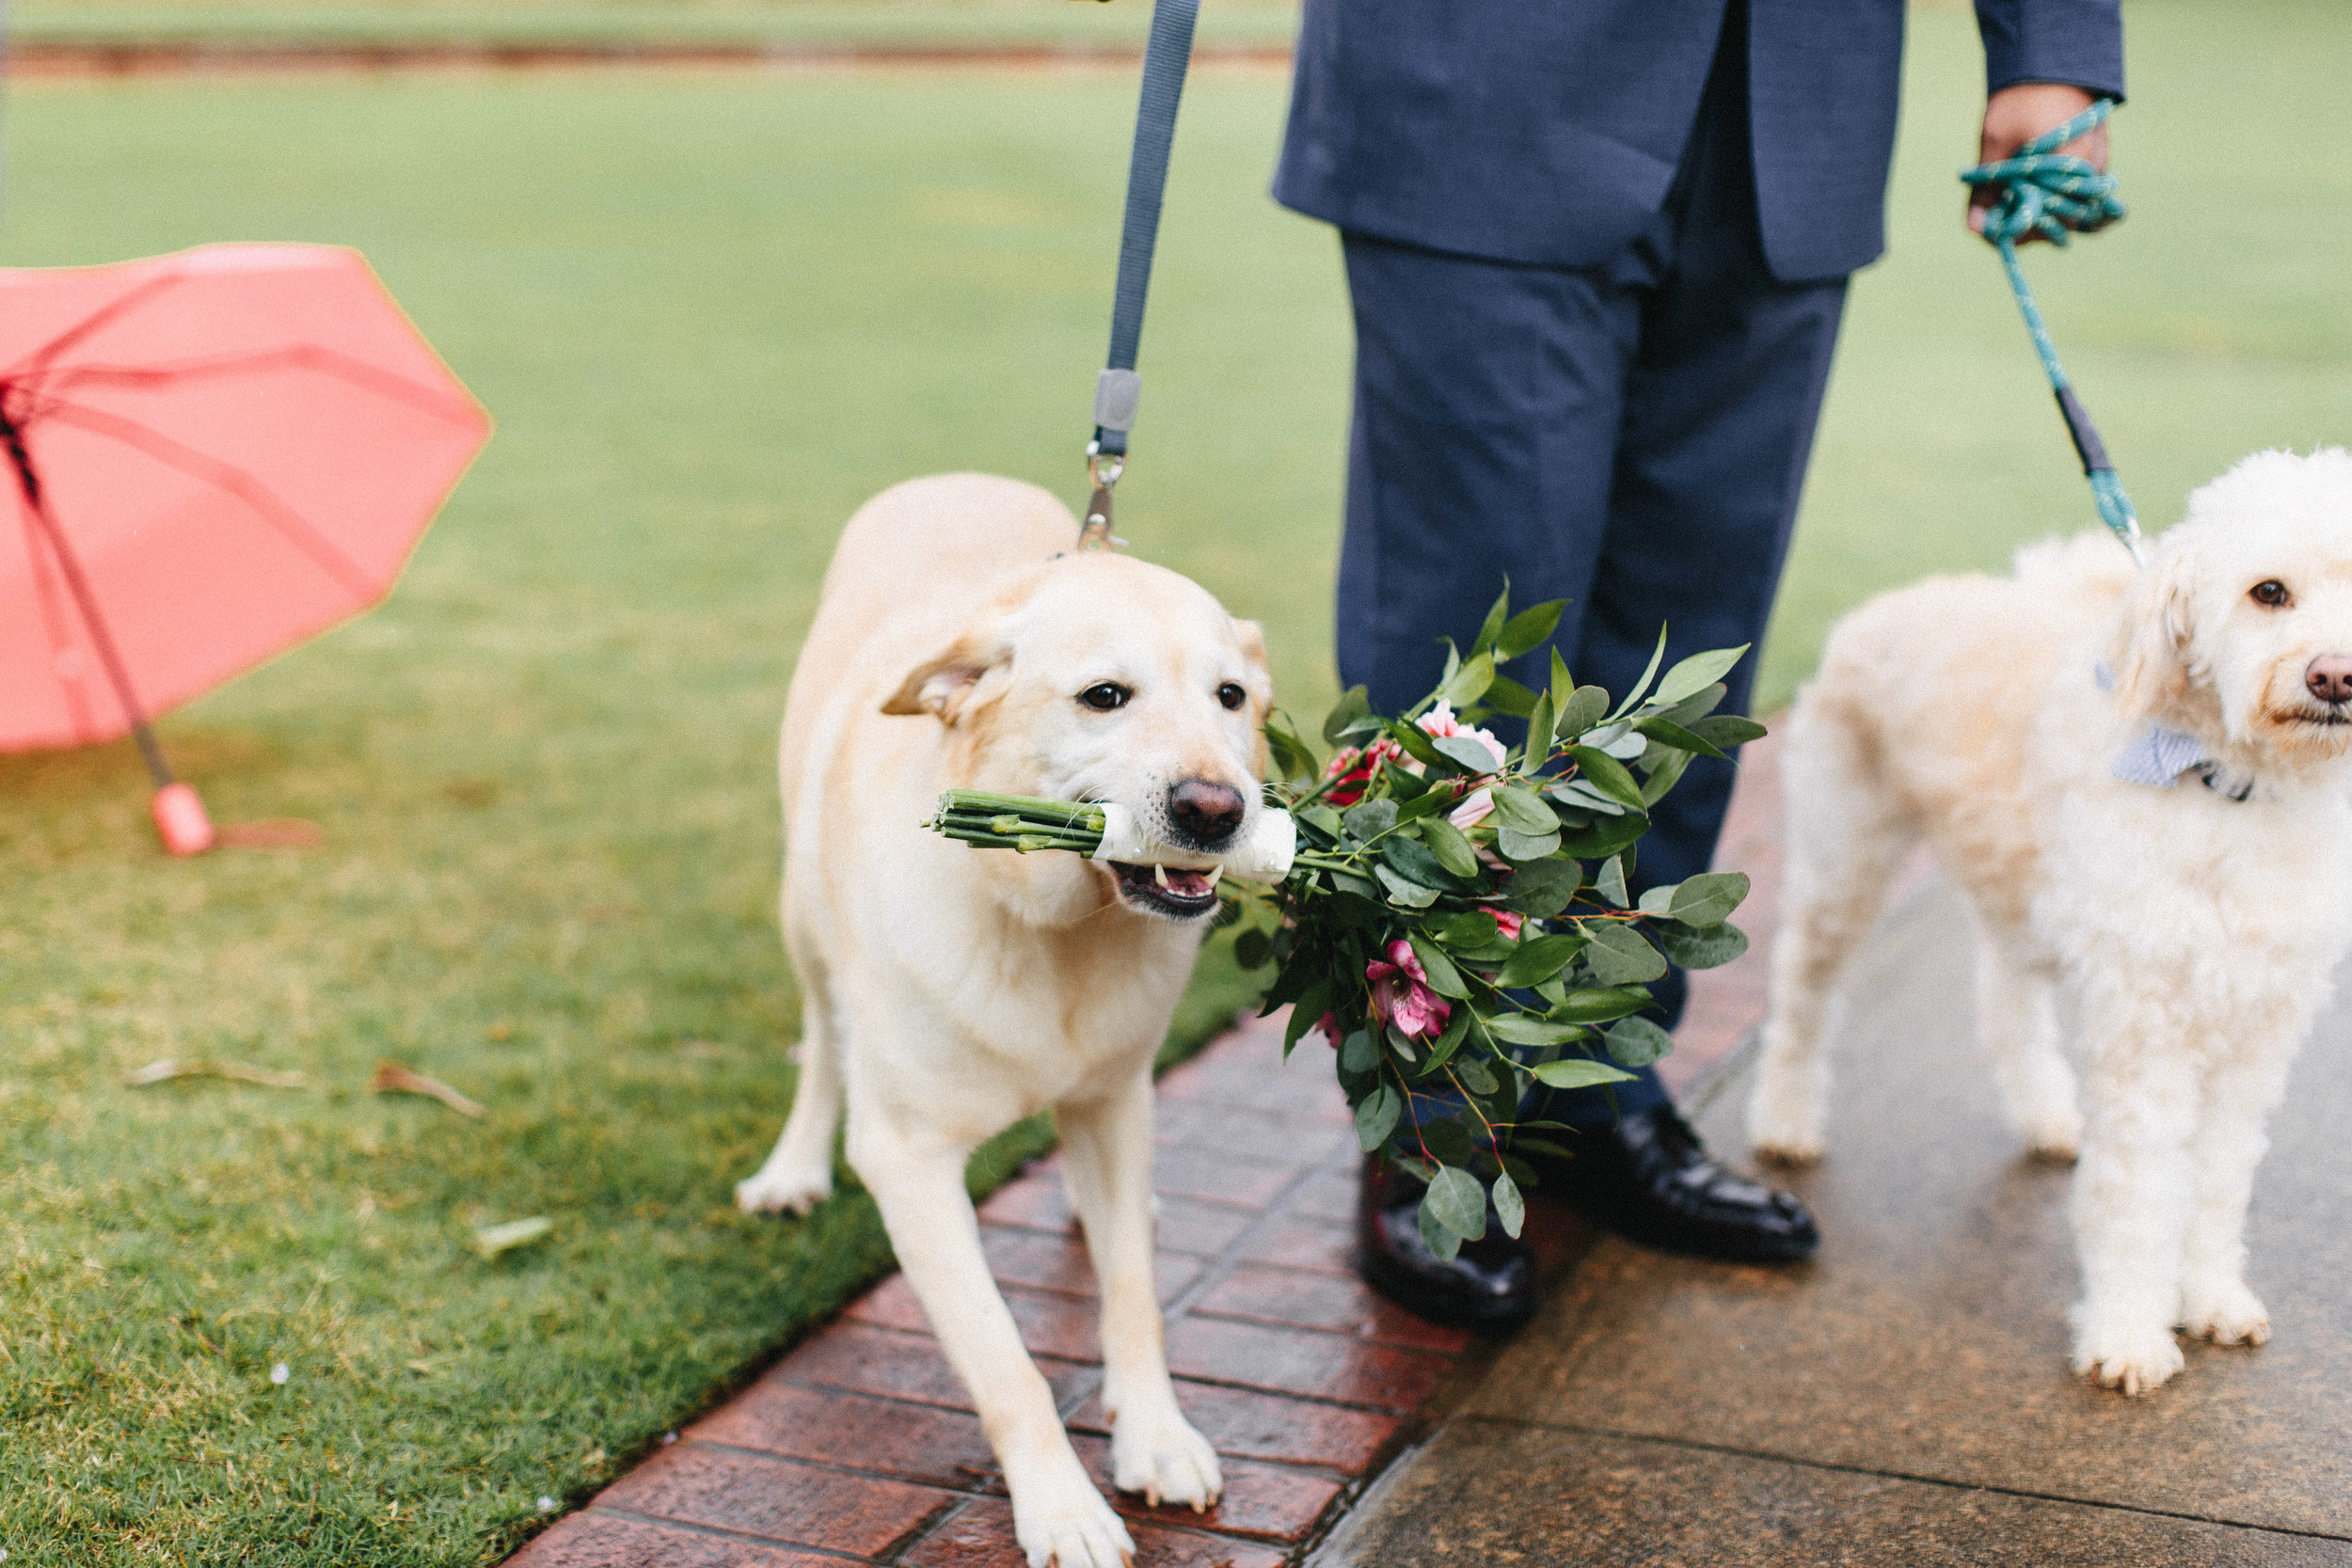 newnan_georgia_elegant_rainy_park_elopement_dogs_pups_tiny_wedding_backless_dress_blue_suit_georgia_atlanta_photographer_1292.jpg